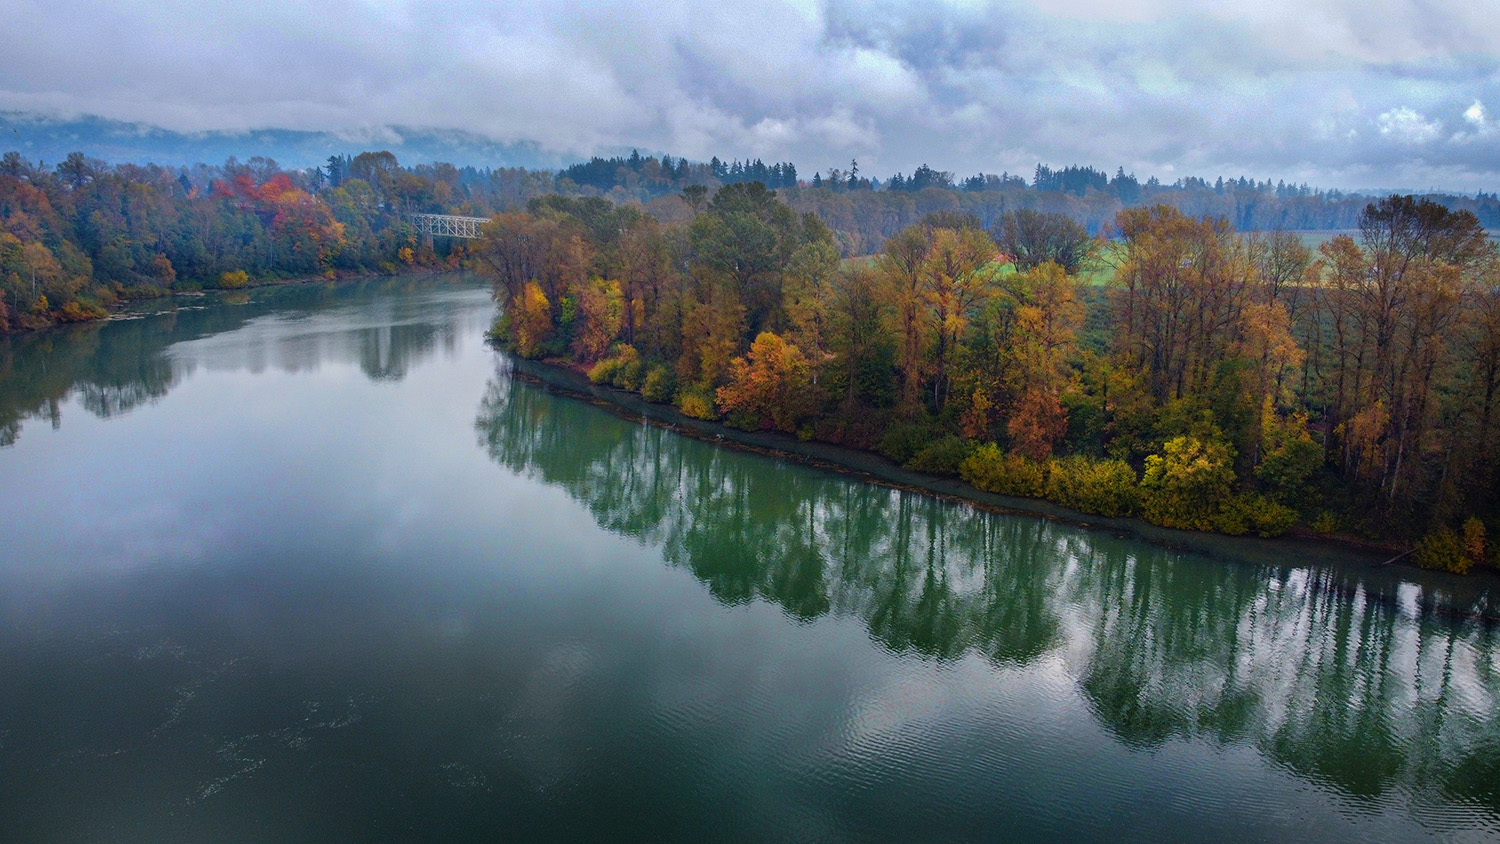 Willamette River at Rogers Landing - Newberg - Photo by Ron Miller